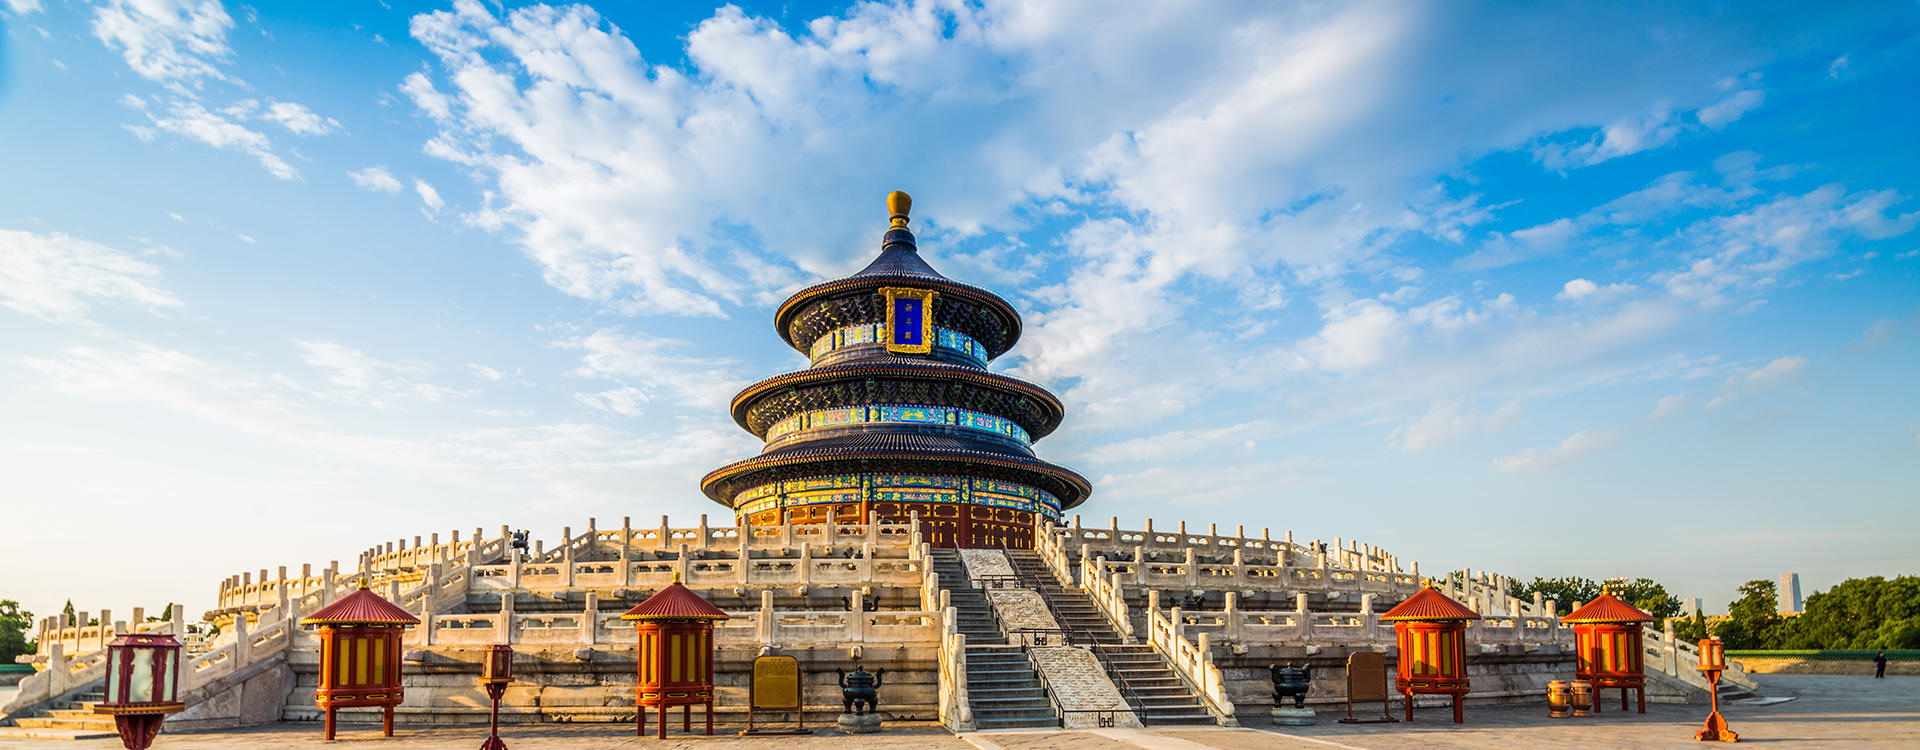 NUO-Beijing_Temple-of-Heaven